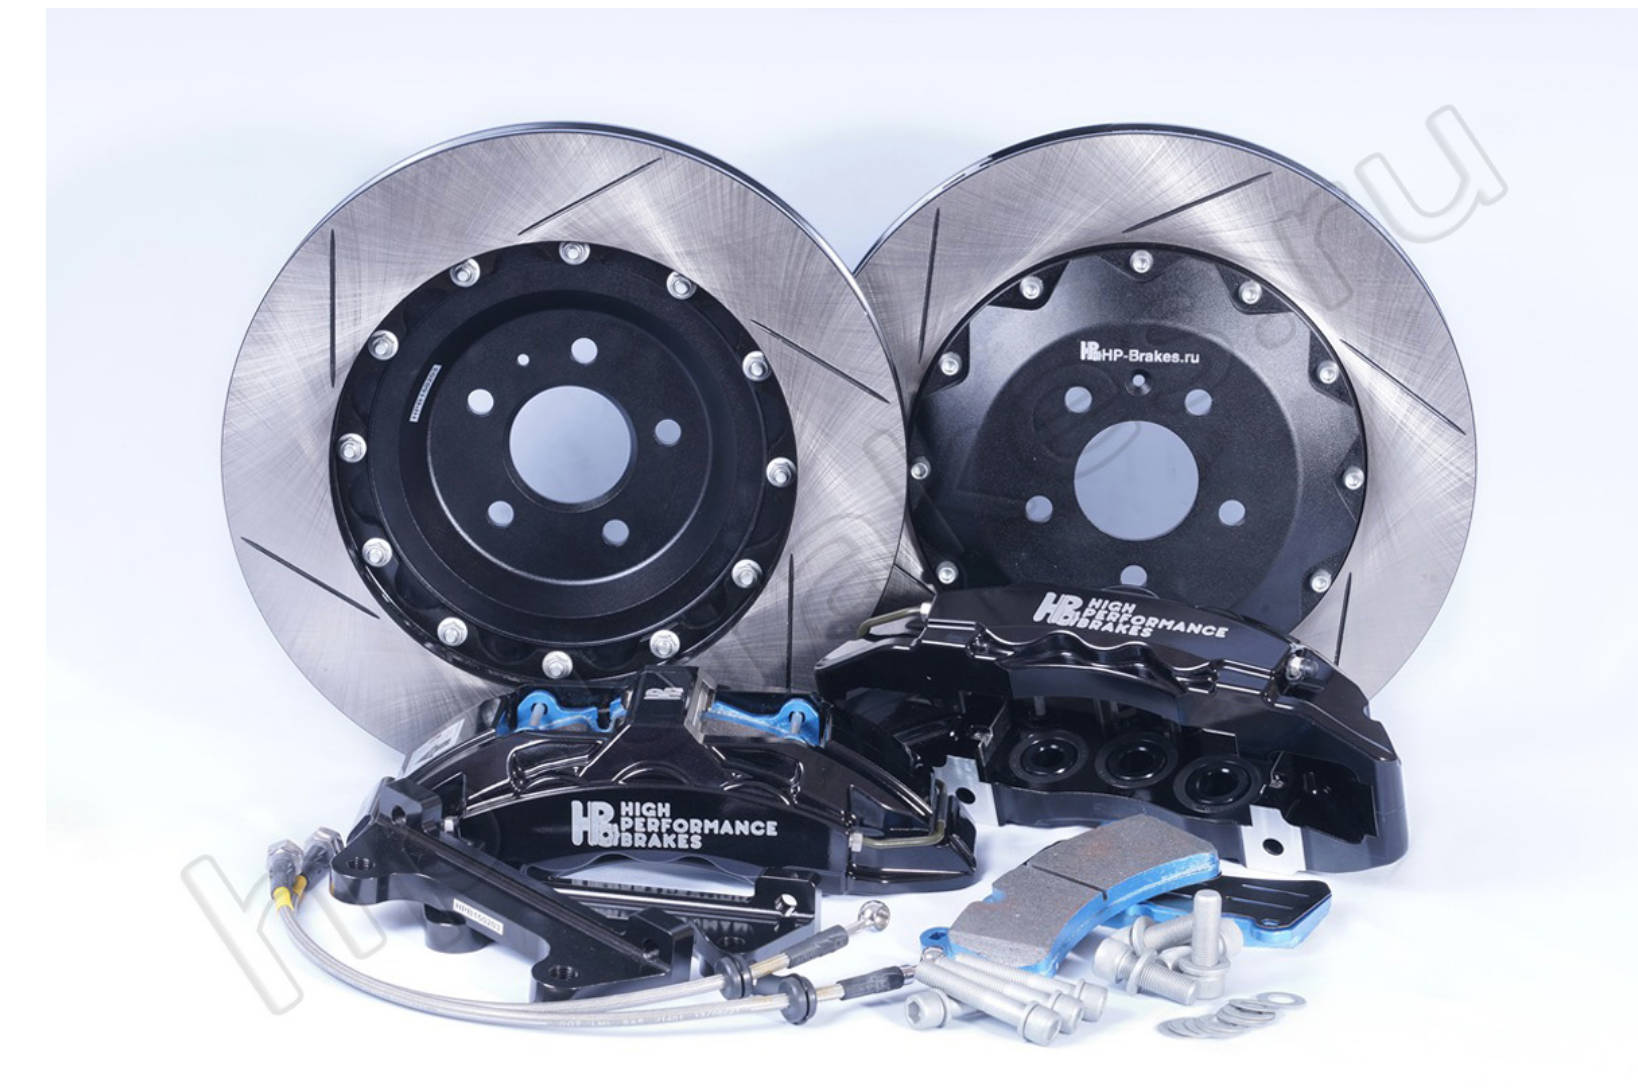 Brake system HP Brakes (Front axle, D19, 6 pistons, disc 380x34mm)